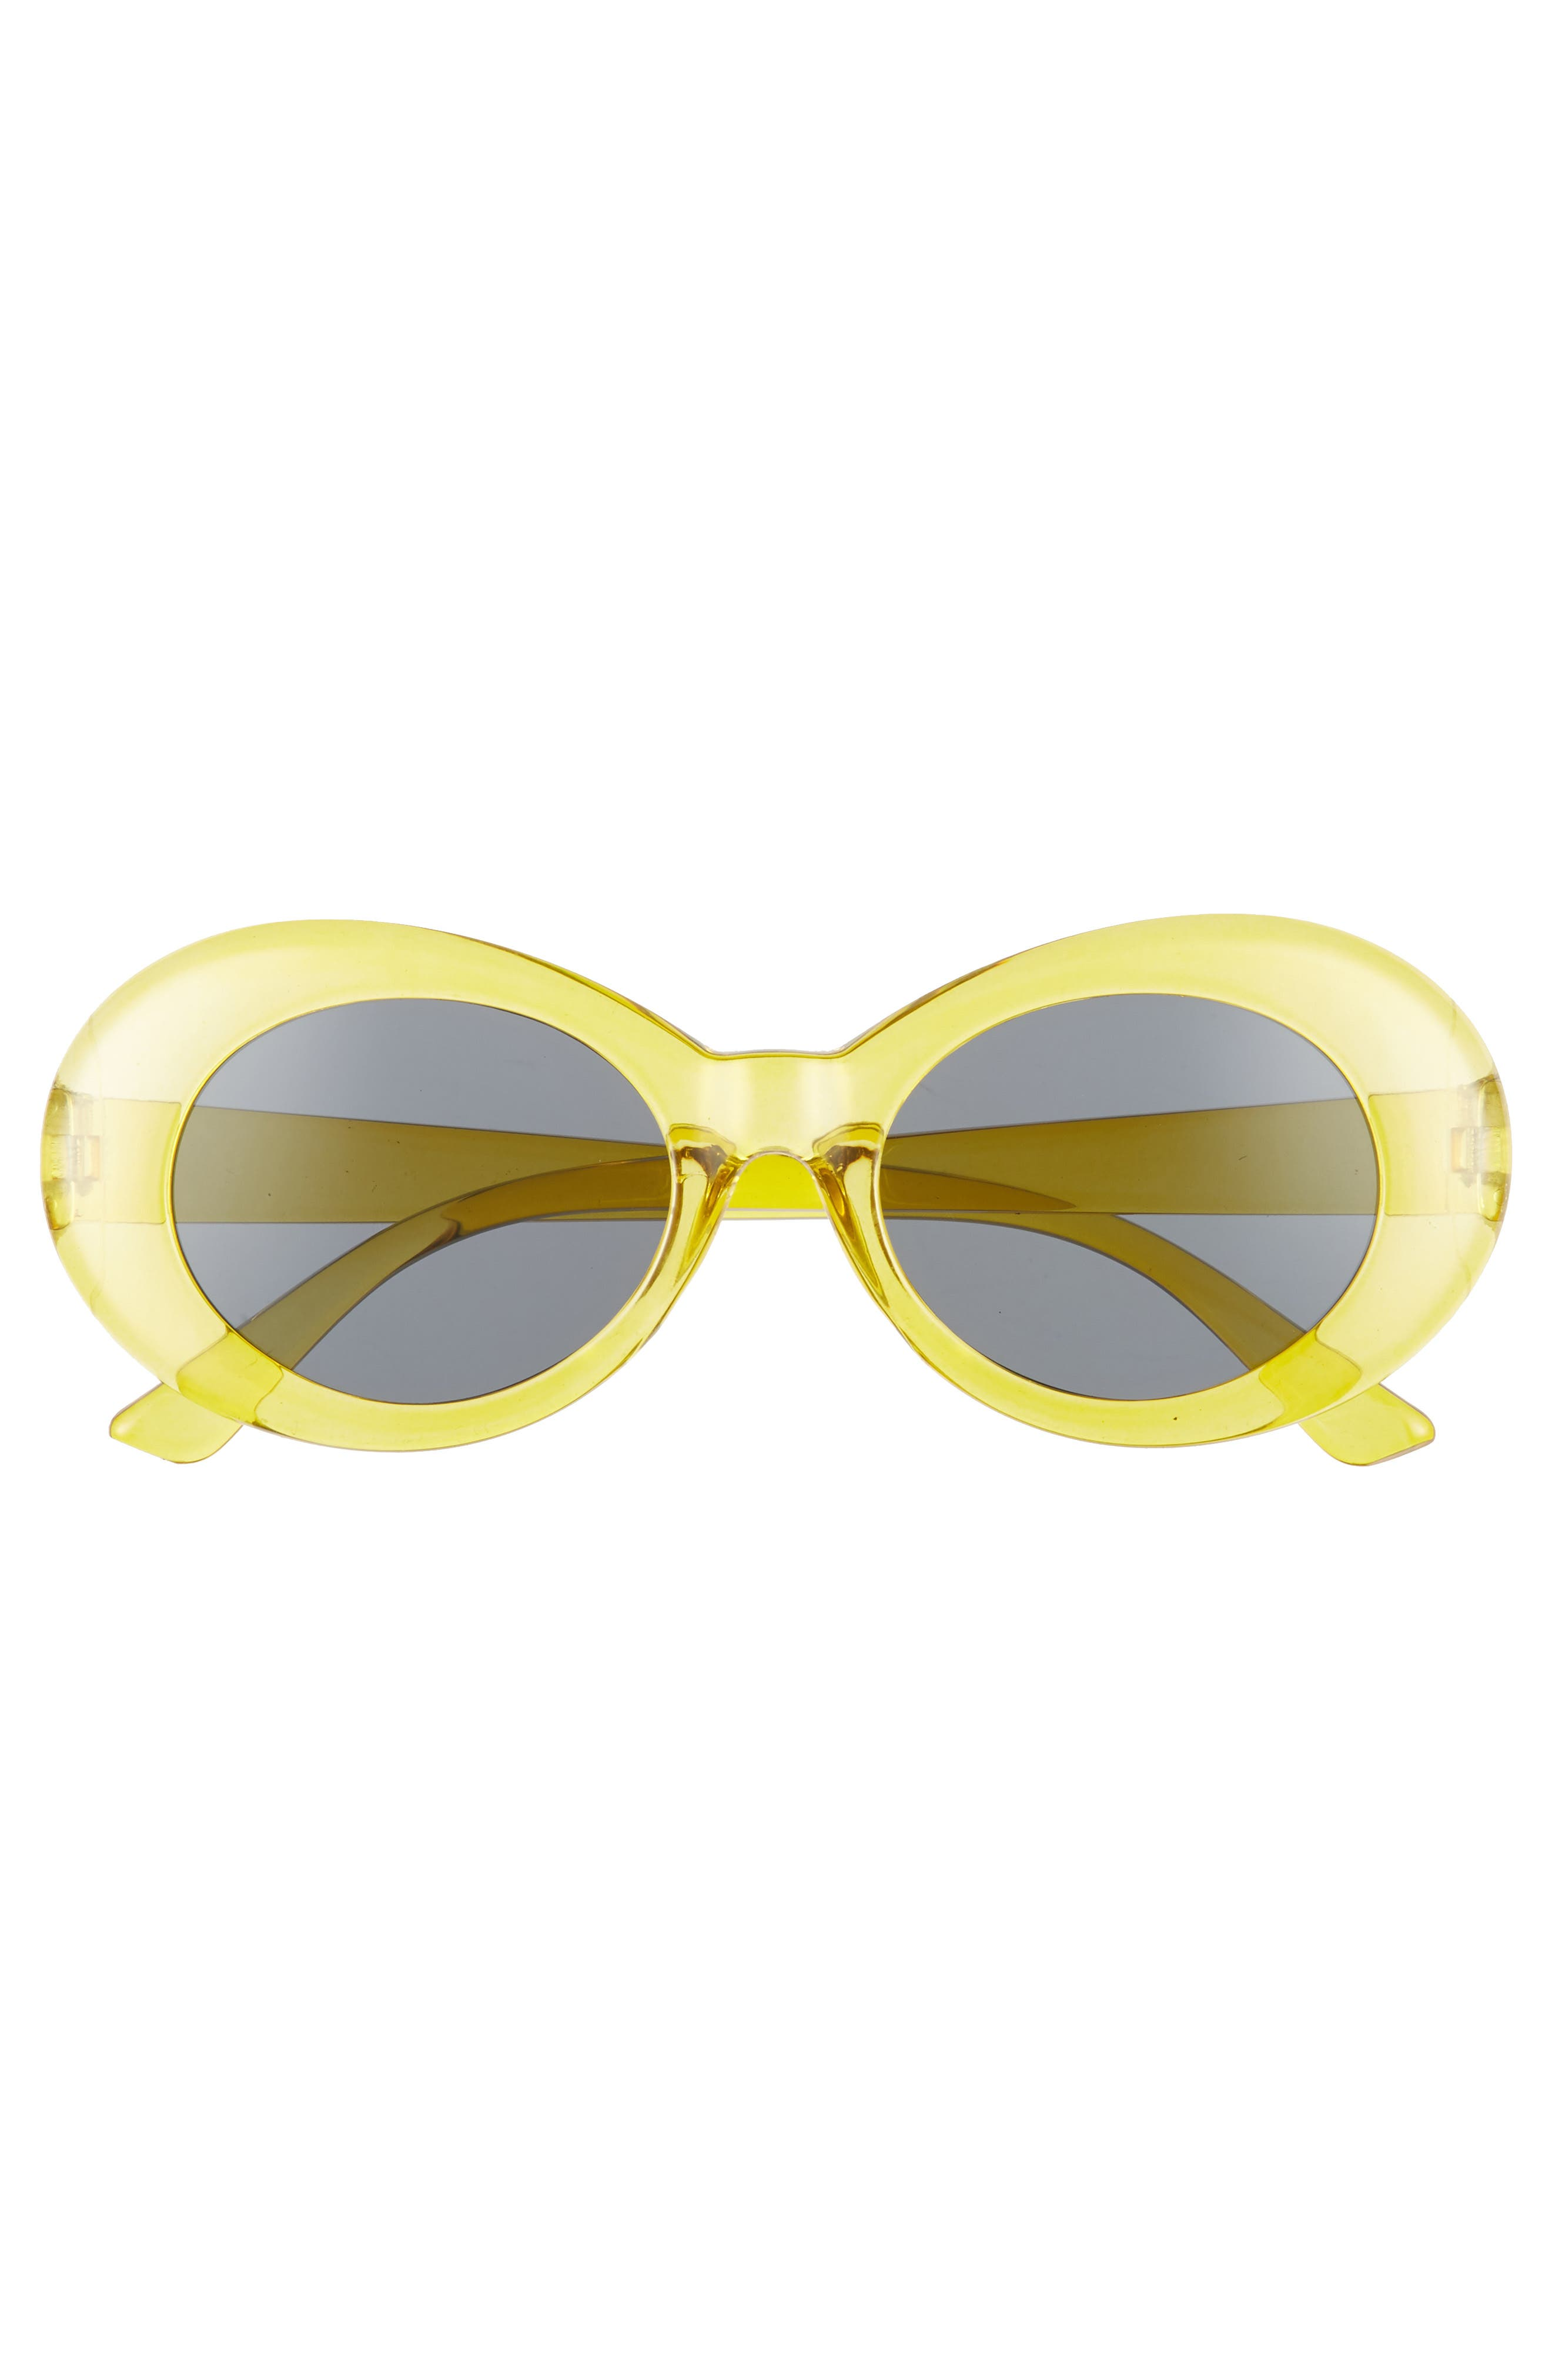 50mm Round Sunglasses,                             Alternate thumbnail 3, color,                             Clear Yellow